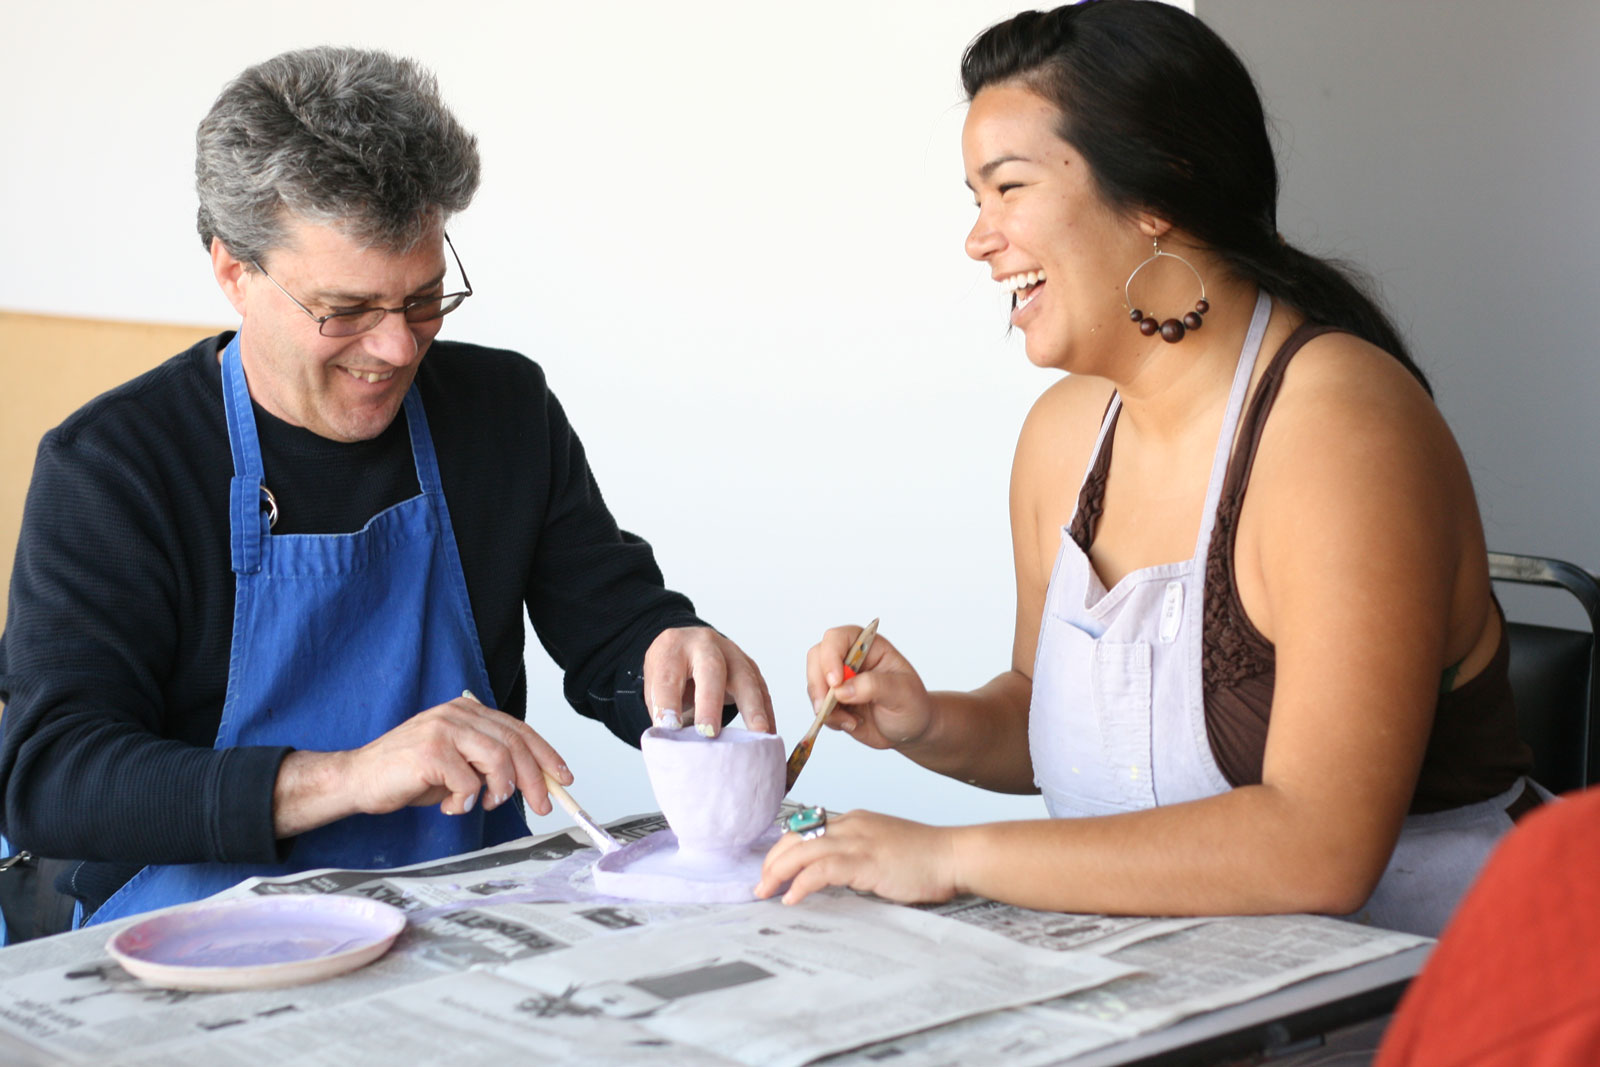 Two LightHouse studios smile as they work on a pottery project